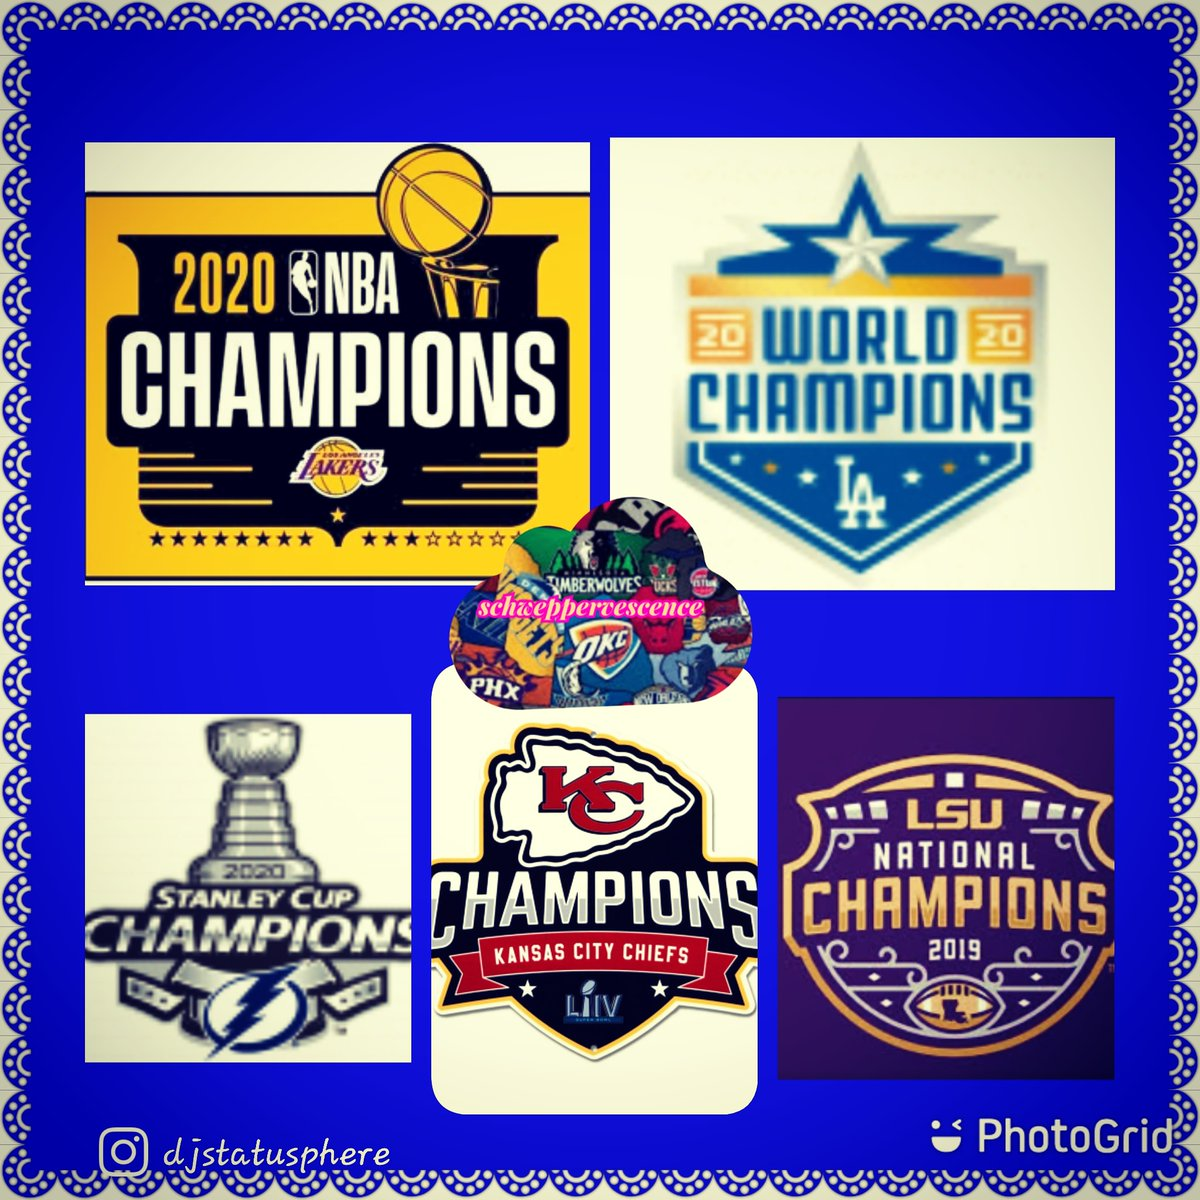 2020 Champions All sports !!!! @lsufootball  @lakers  @dodgers  @tblightning  @chiefs  !!! #djstatusphere  #louscannon  #schweppervescence  #hiphop  #football #basketball  #baseball #lsufootball  #lakers